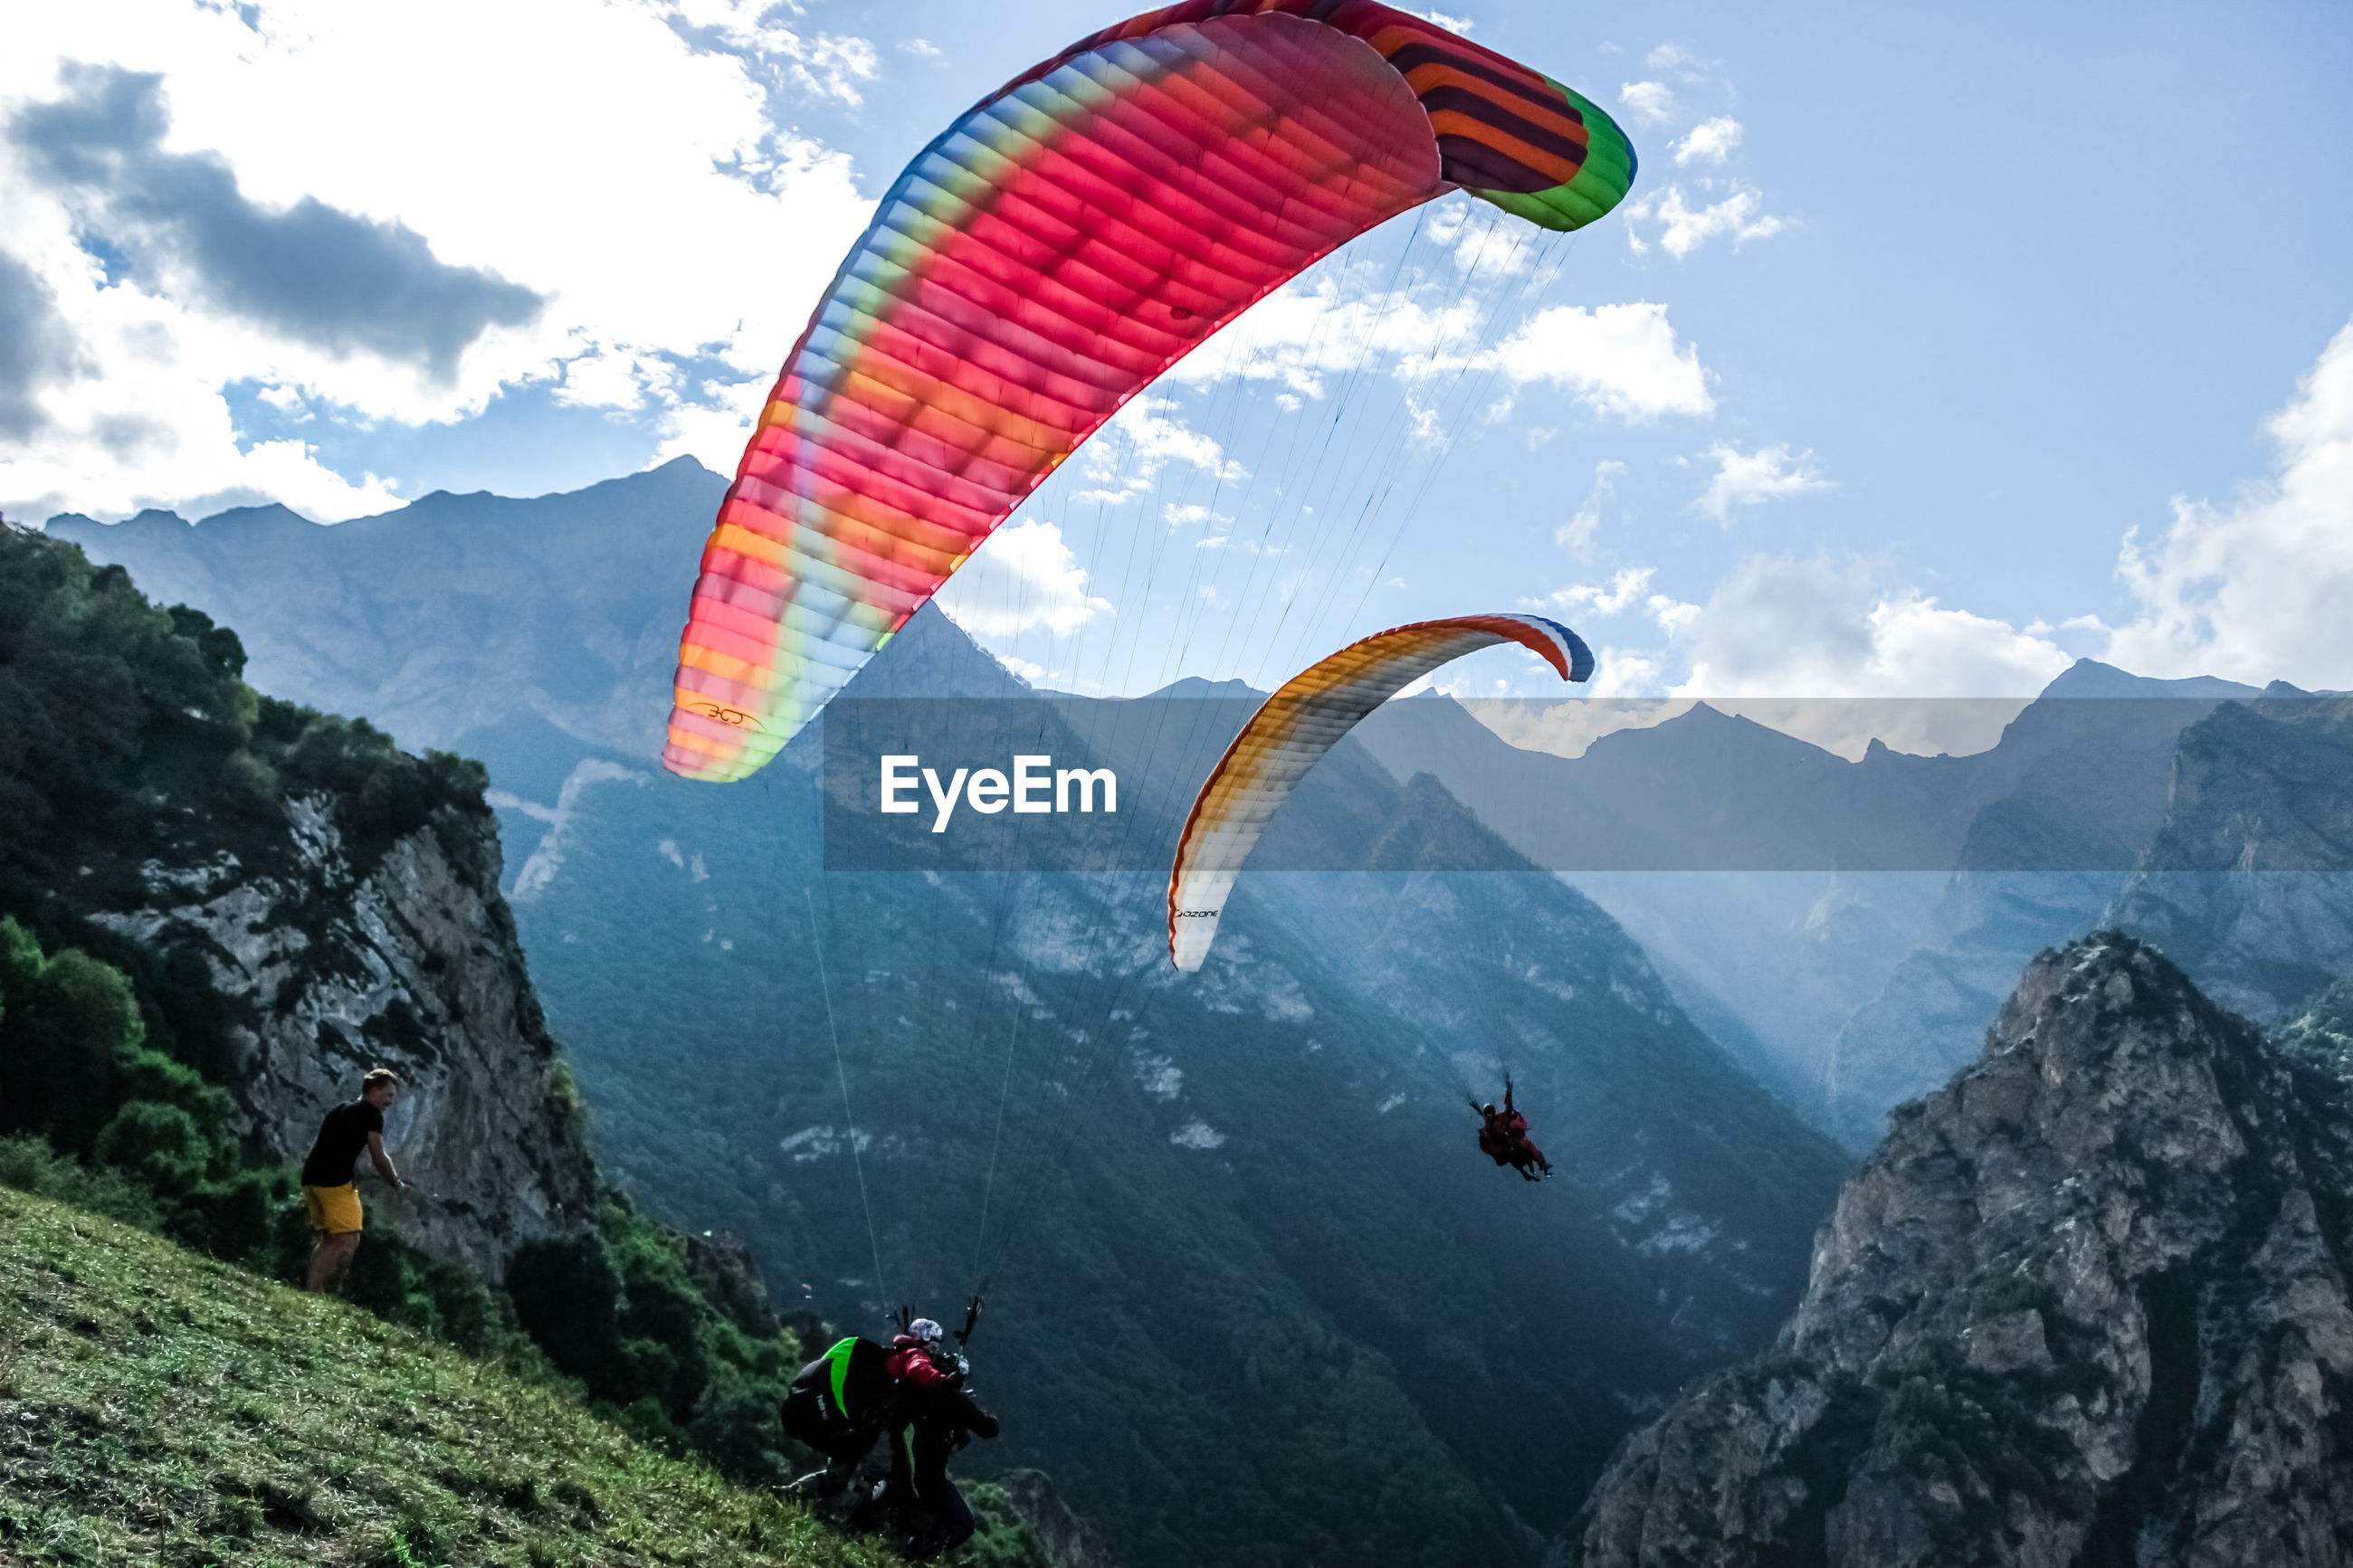 People paragliding over mountains